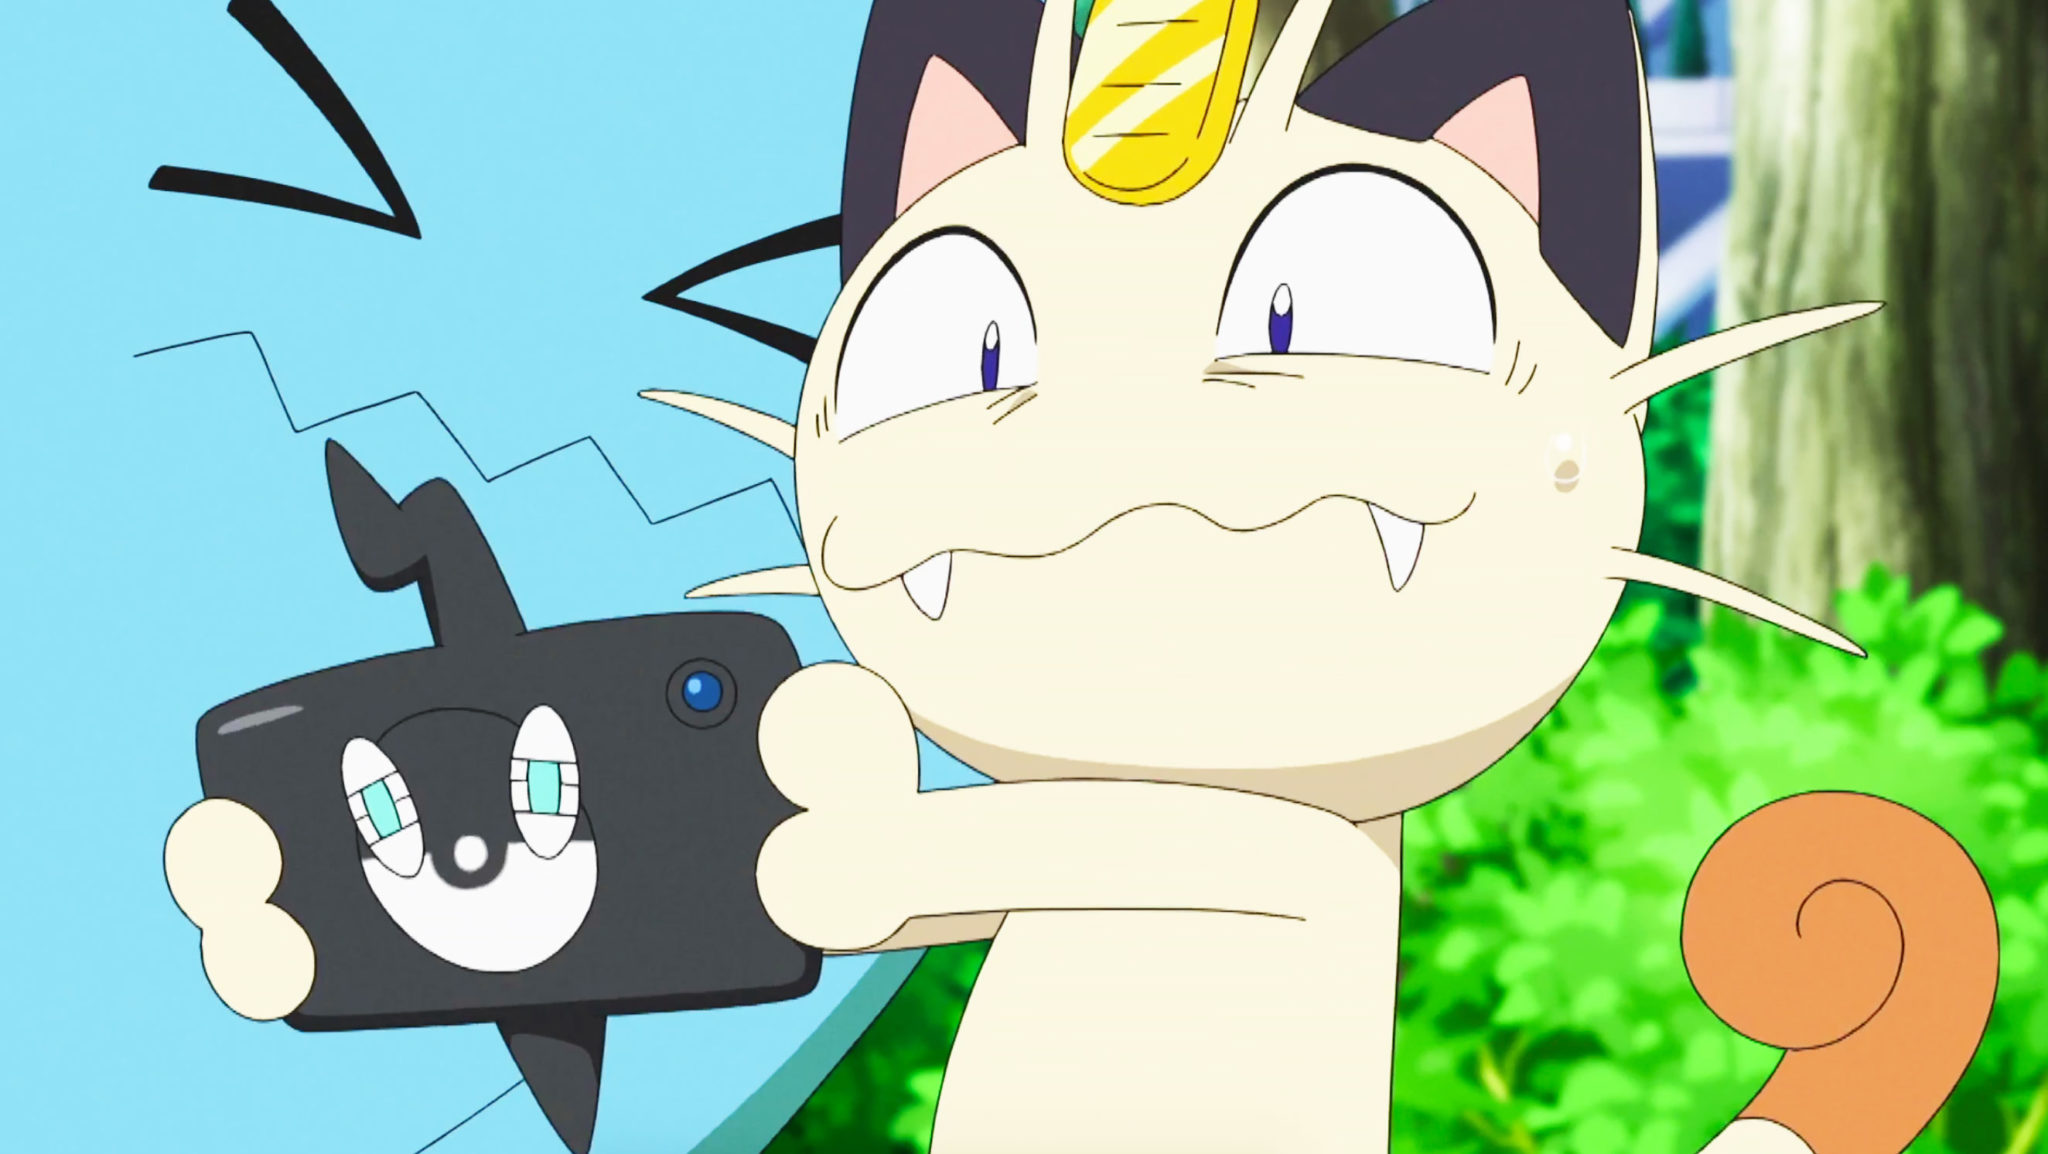 meowth holding rotom phone in pokemon anime